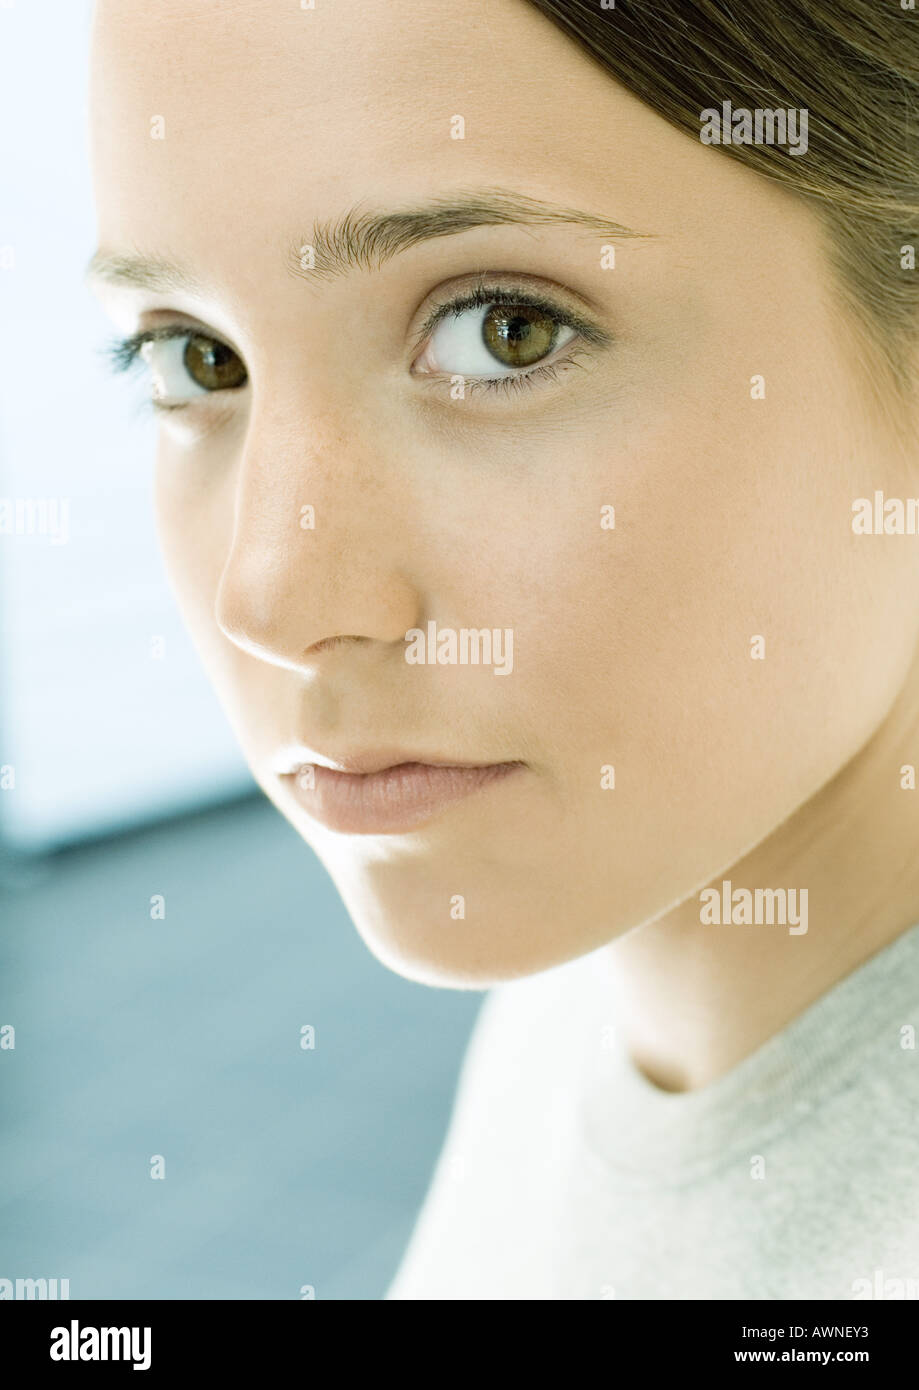 Teen girl, portrait - Stock Image